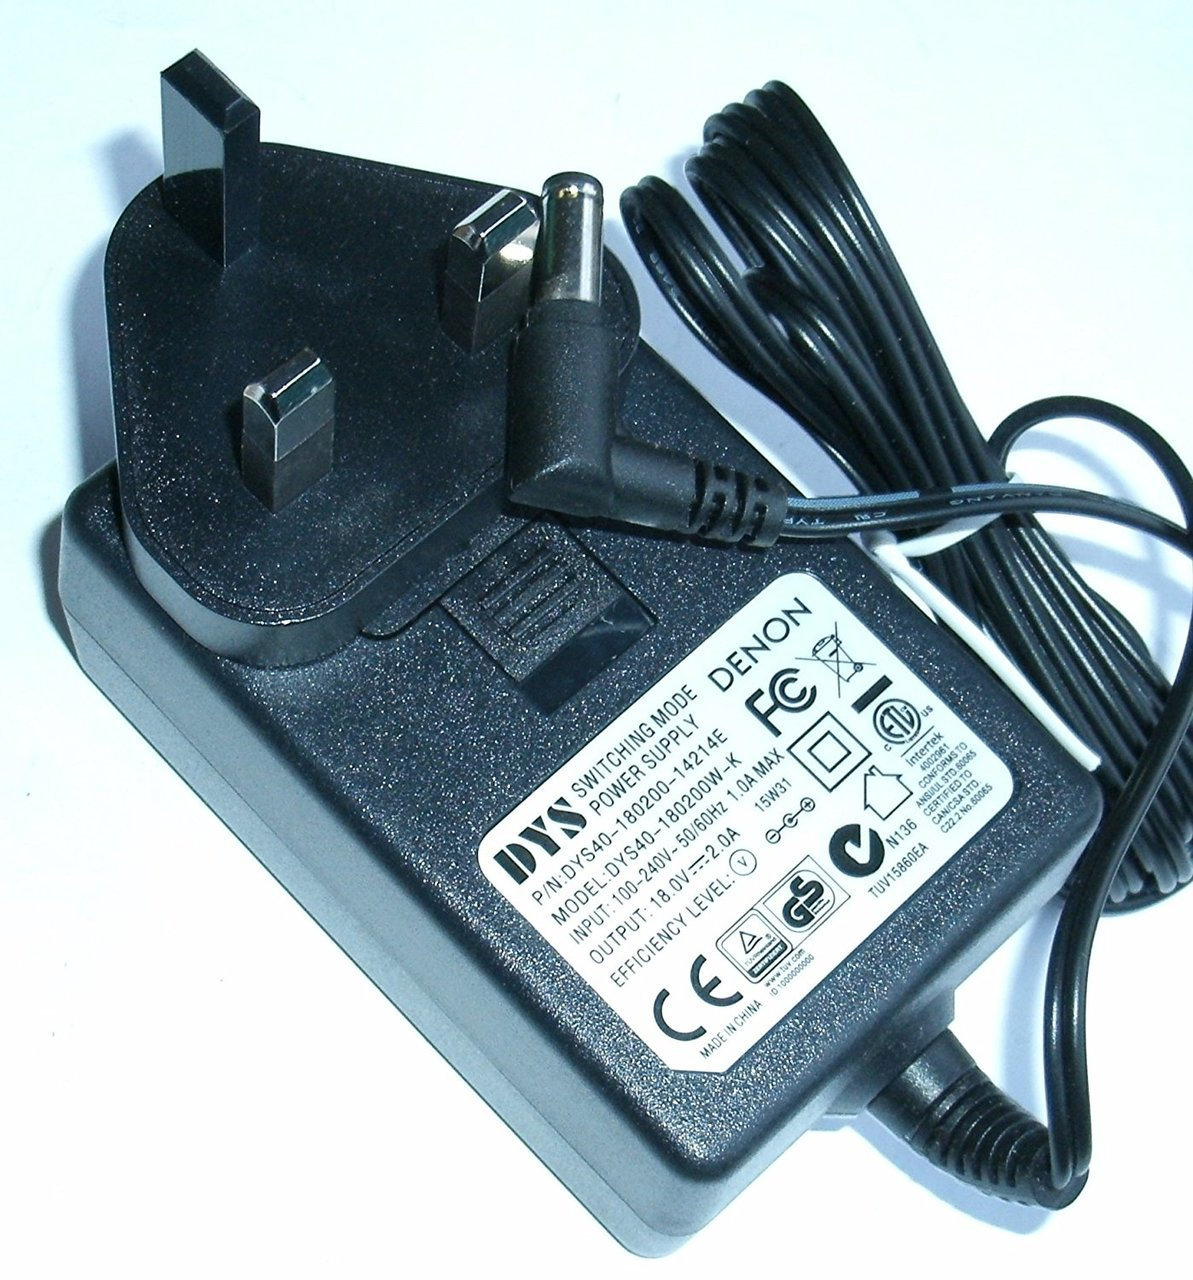 AC Adapter For Klipsch Model DYS40-180200-15A27F Charger DYS40-180200W-1 P//N